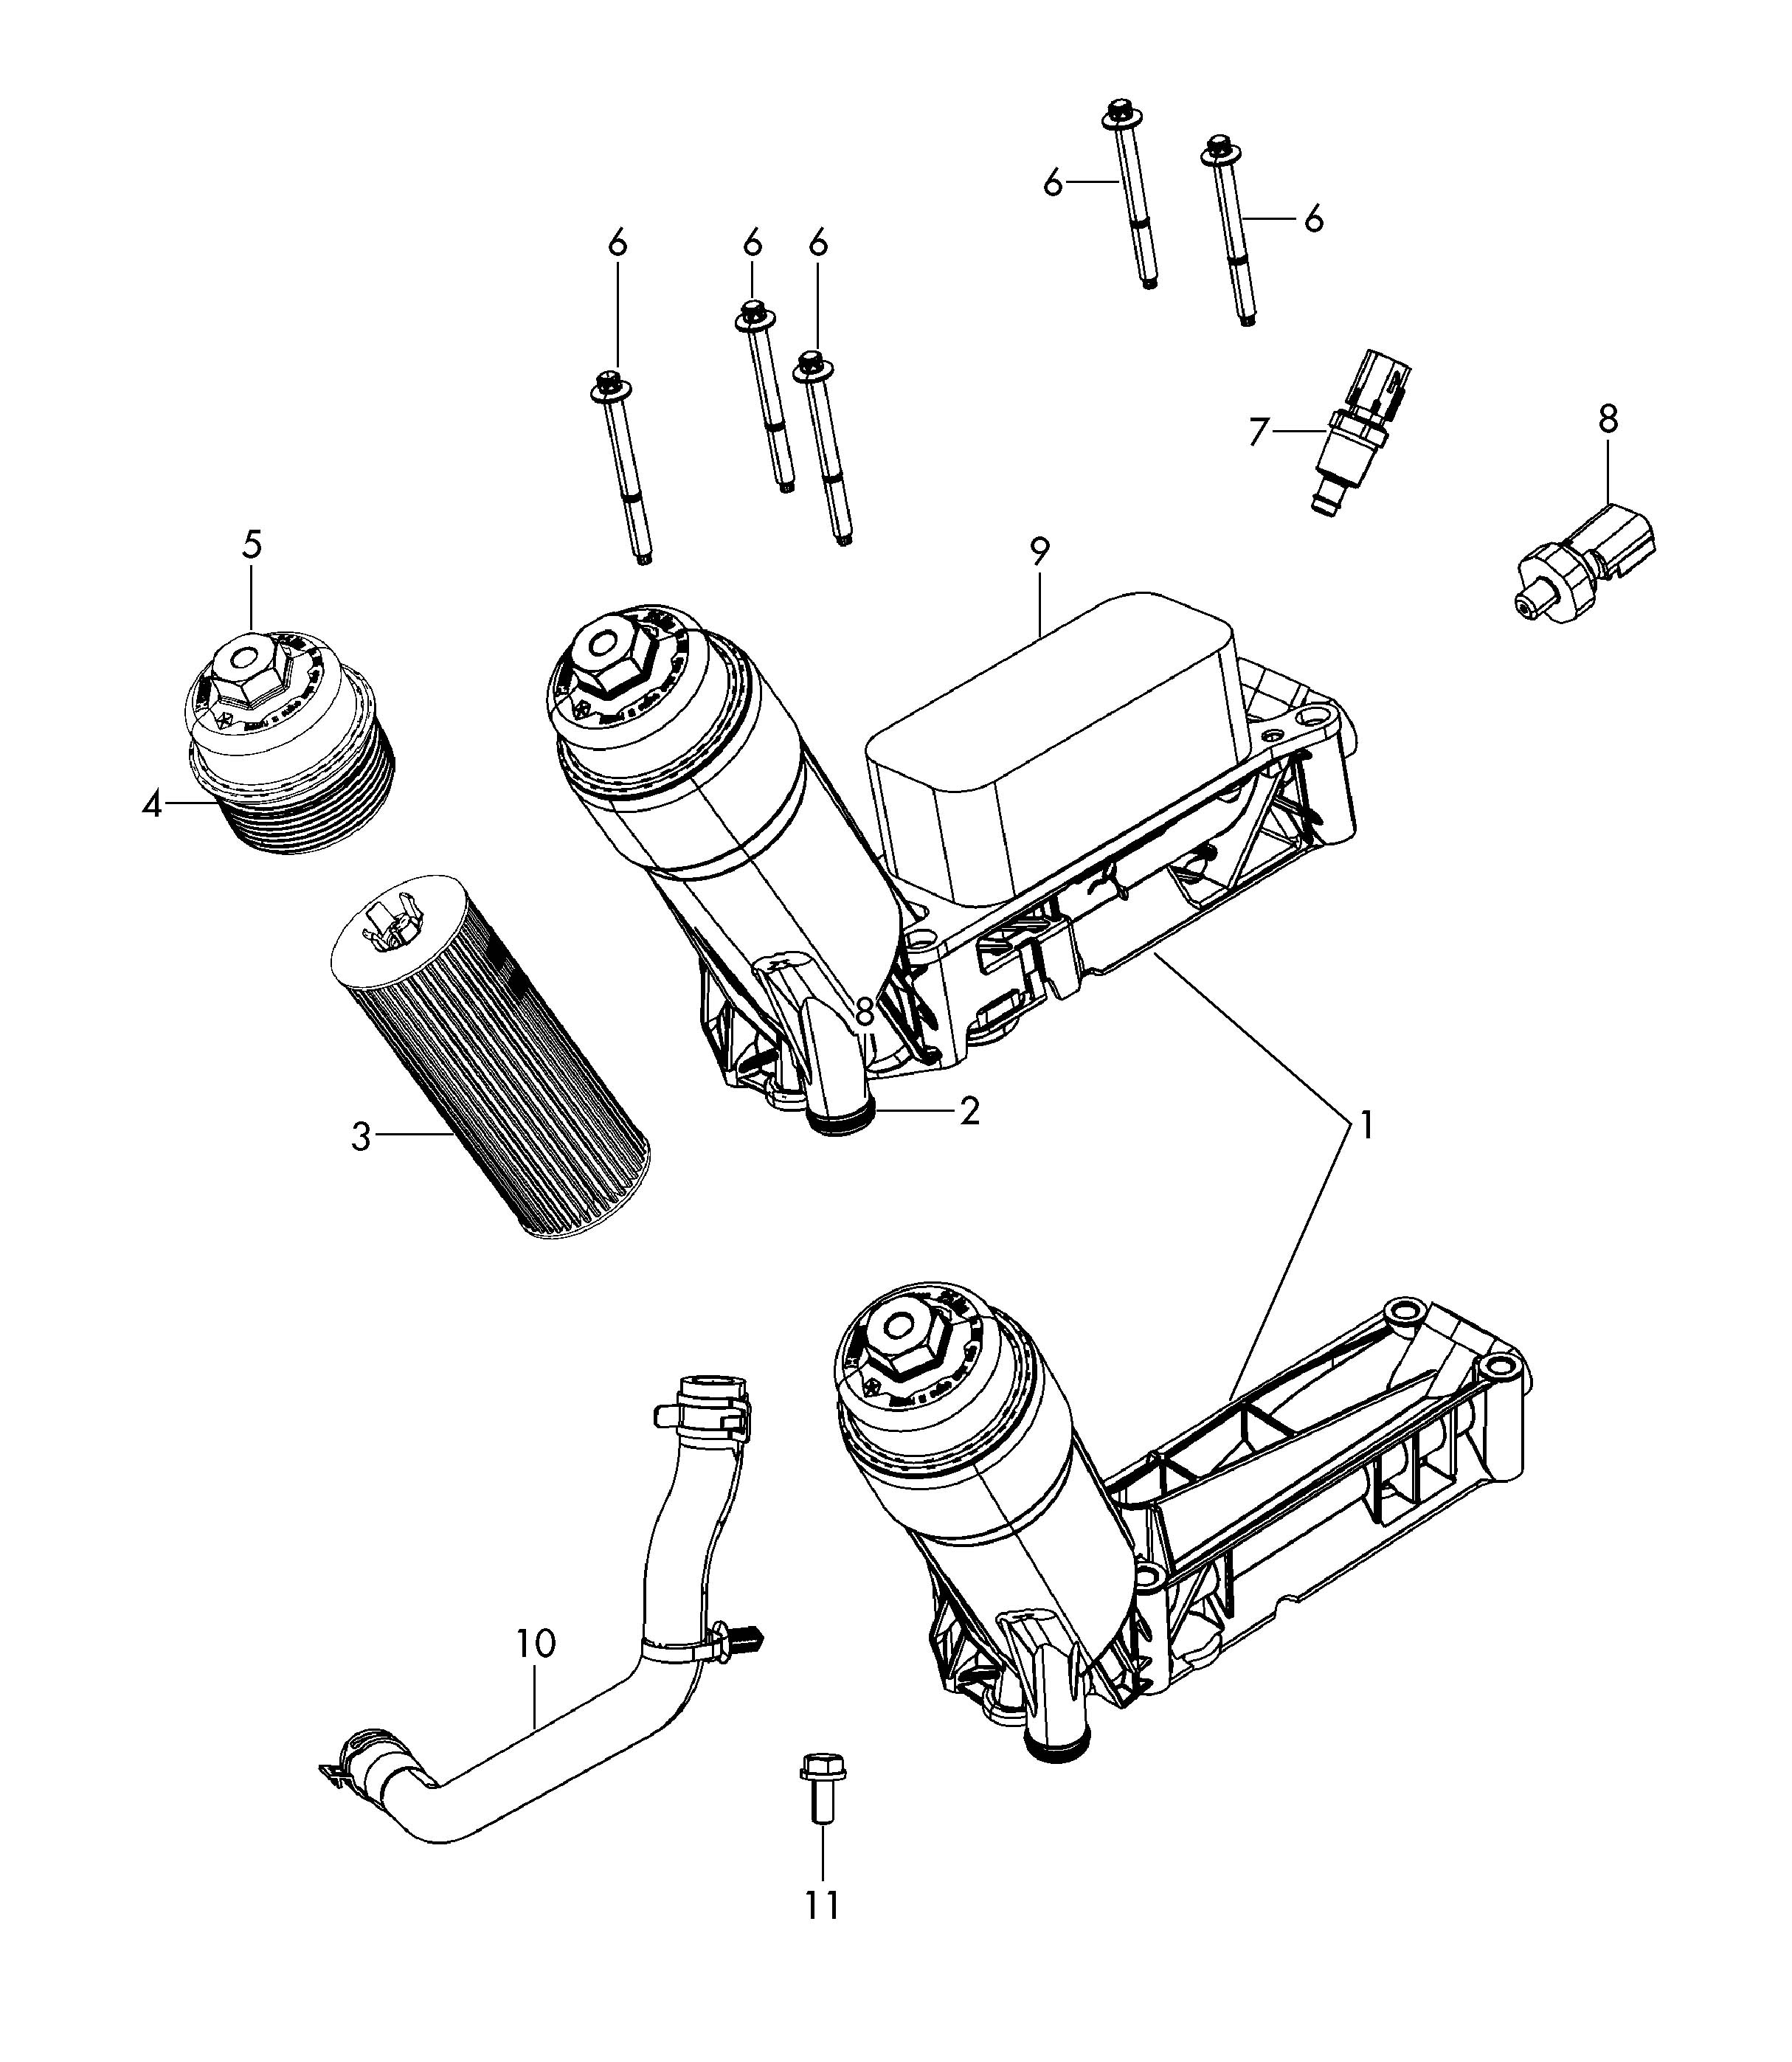 2011 volkswagen routan oil filter with flange and oil cooler